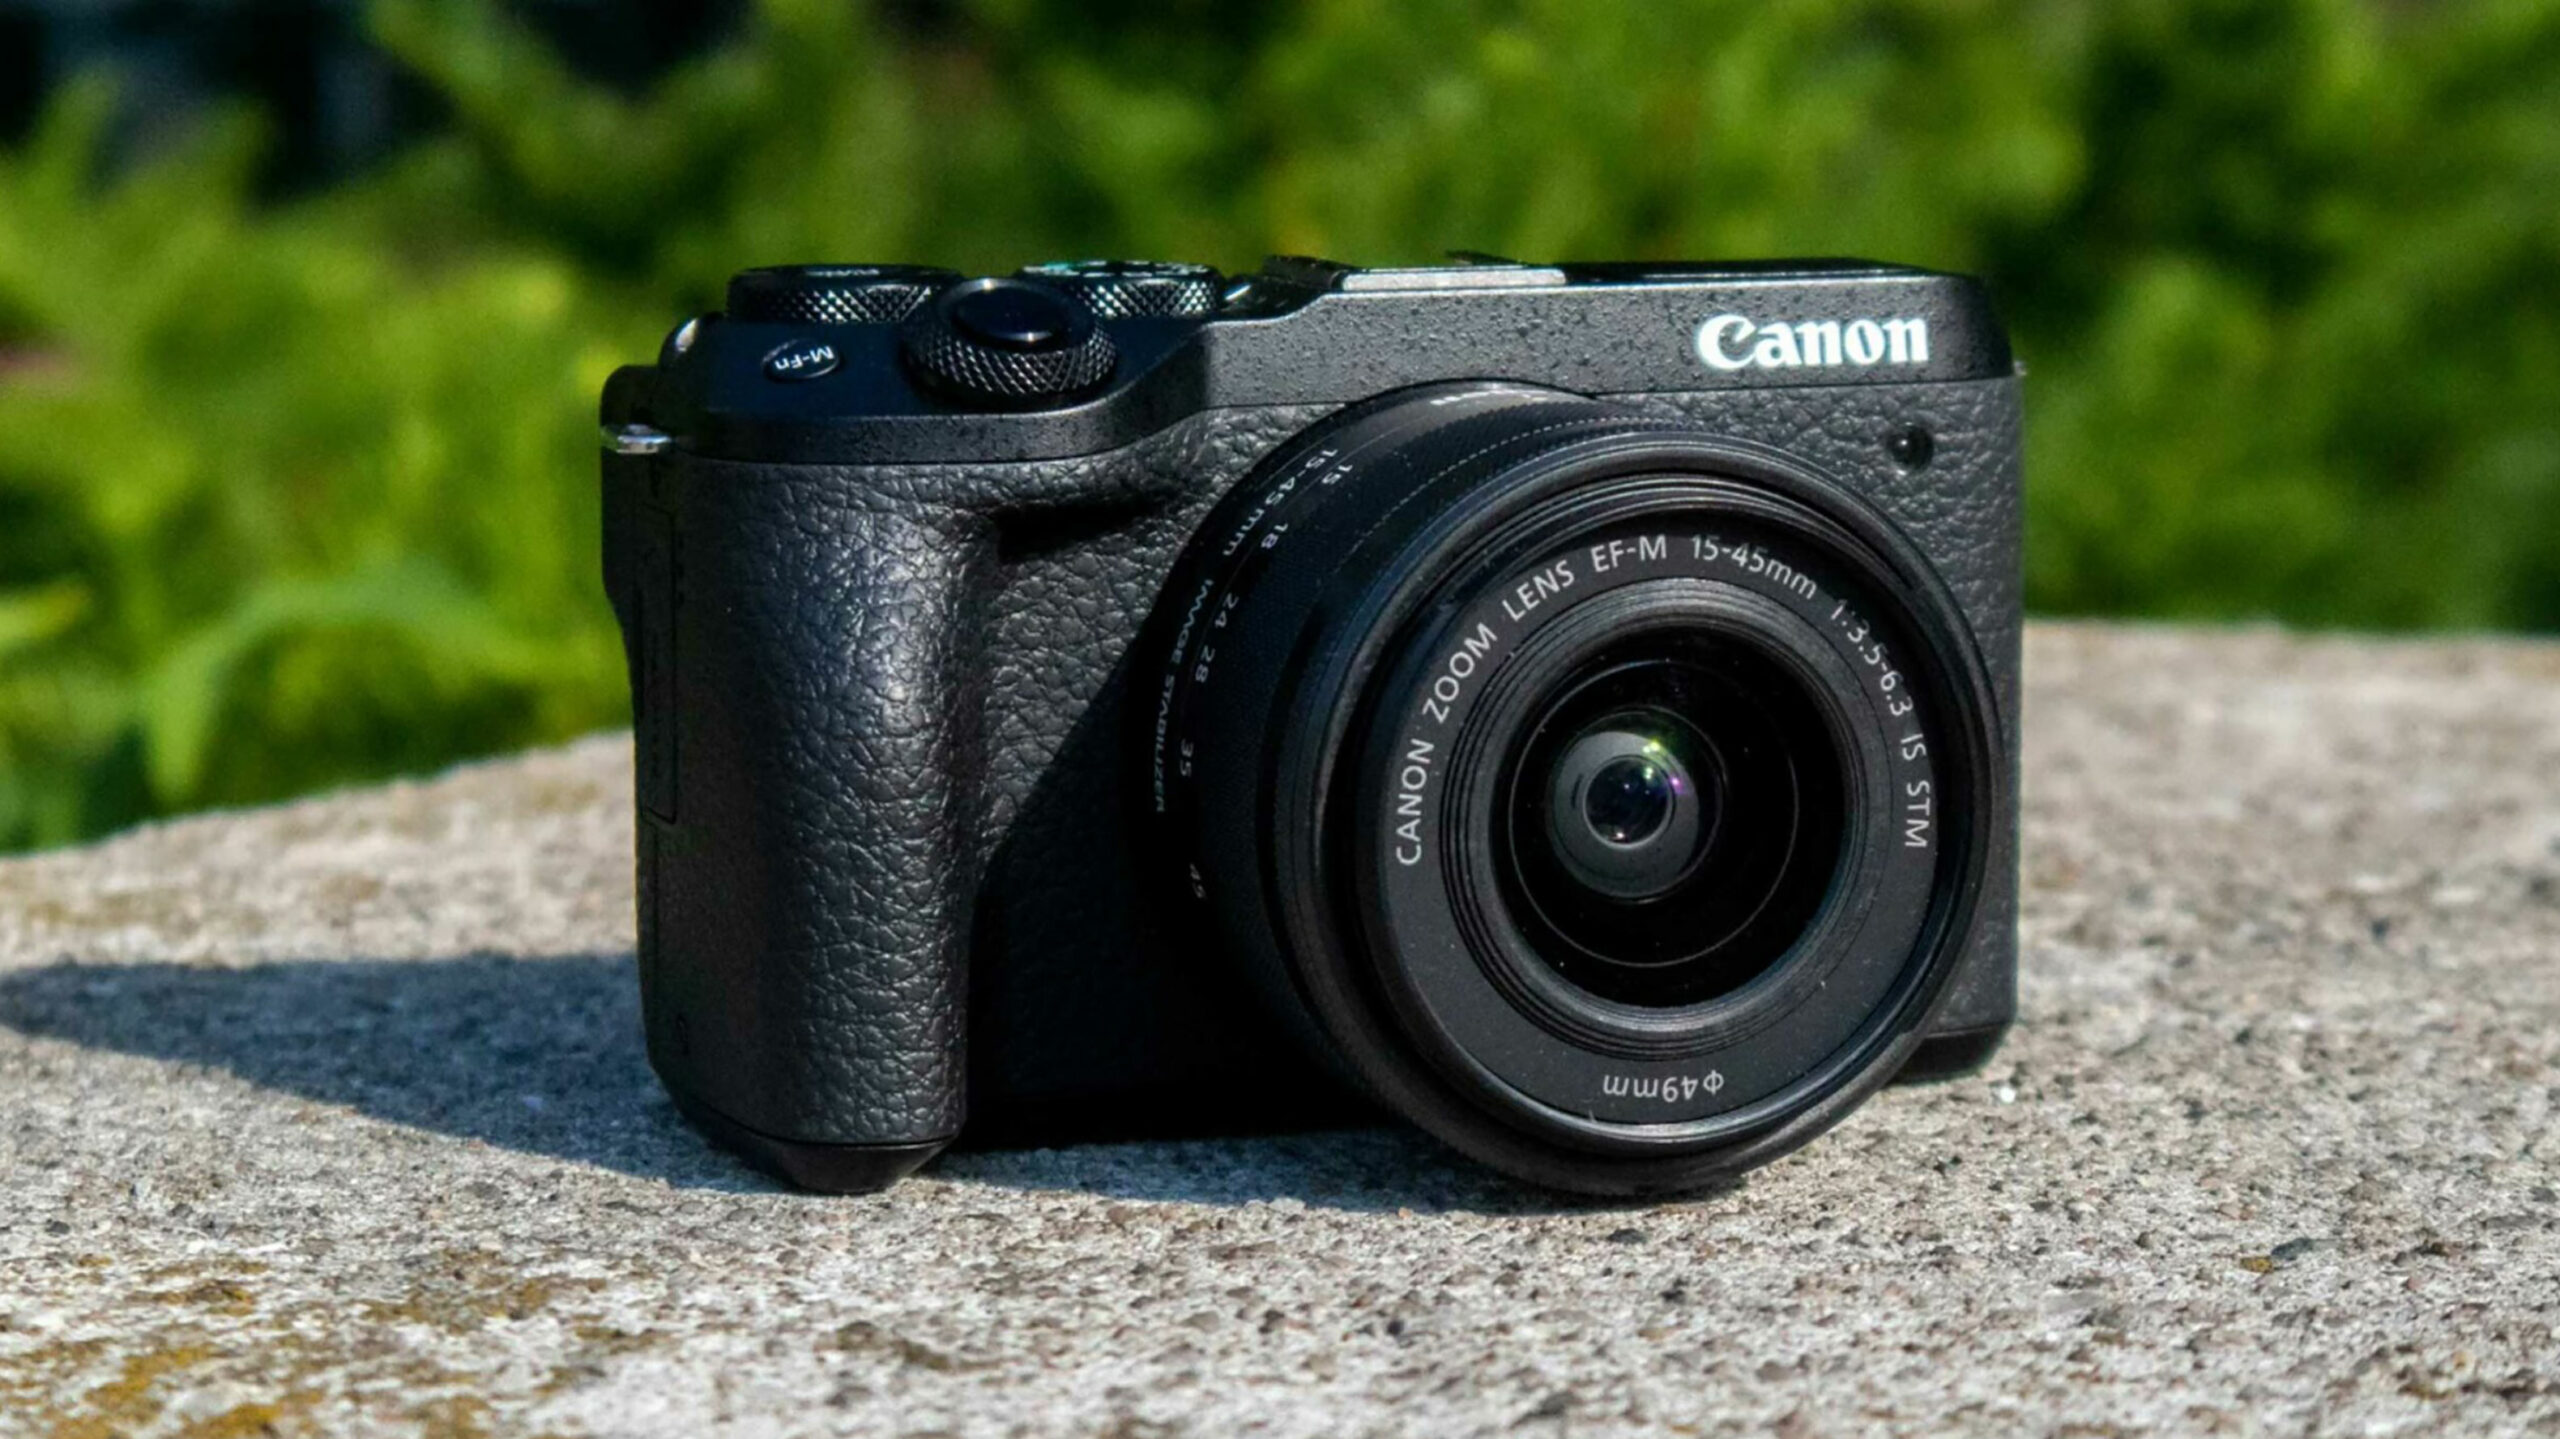 Canon EOS M6 Mark II Review: The compact champ